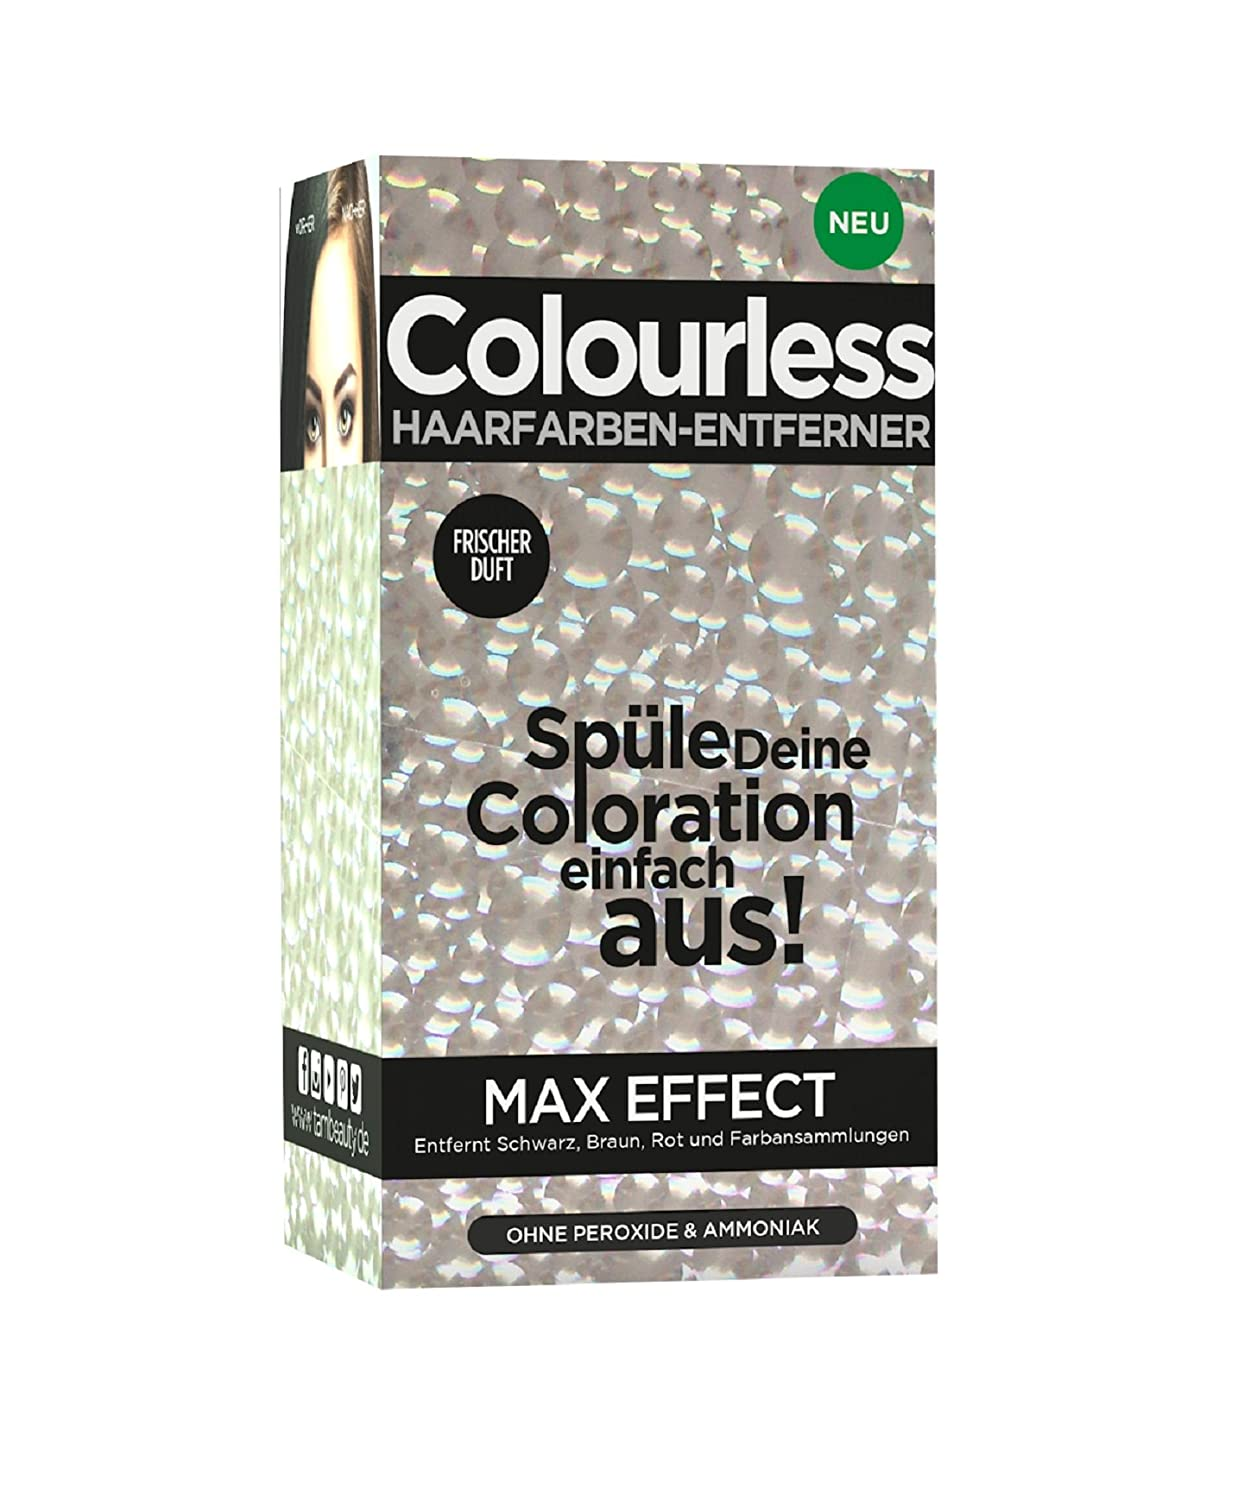 Colourless Max Effect Hair Colour Remover Tam Beauty 108257781